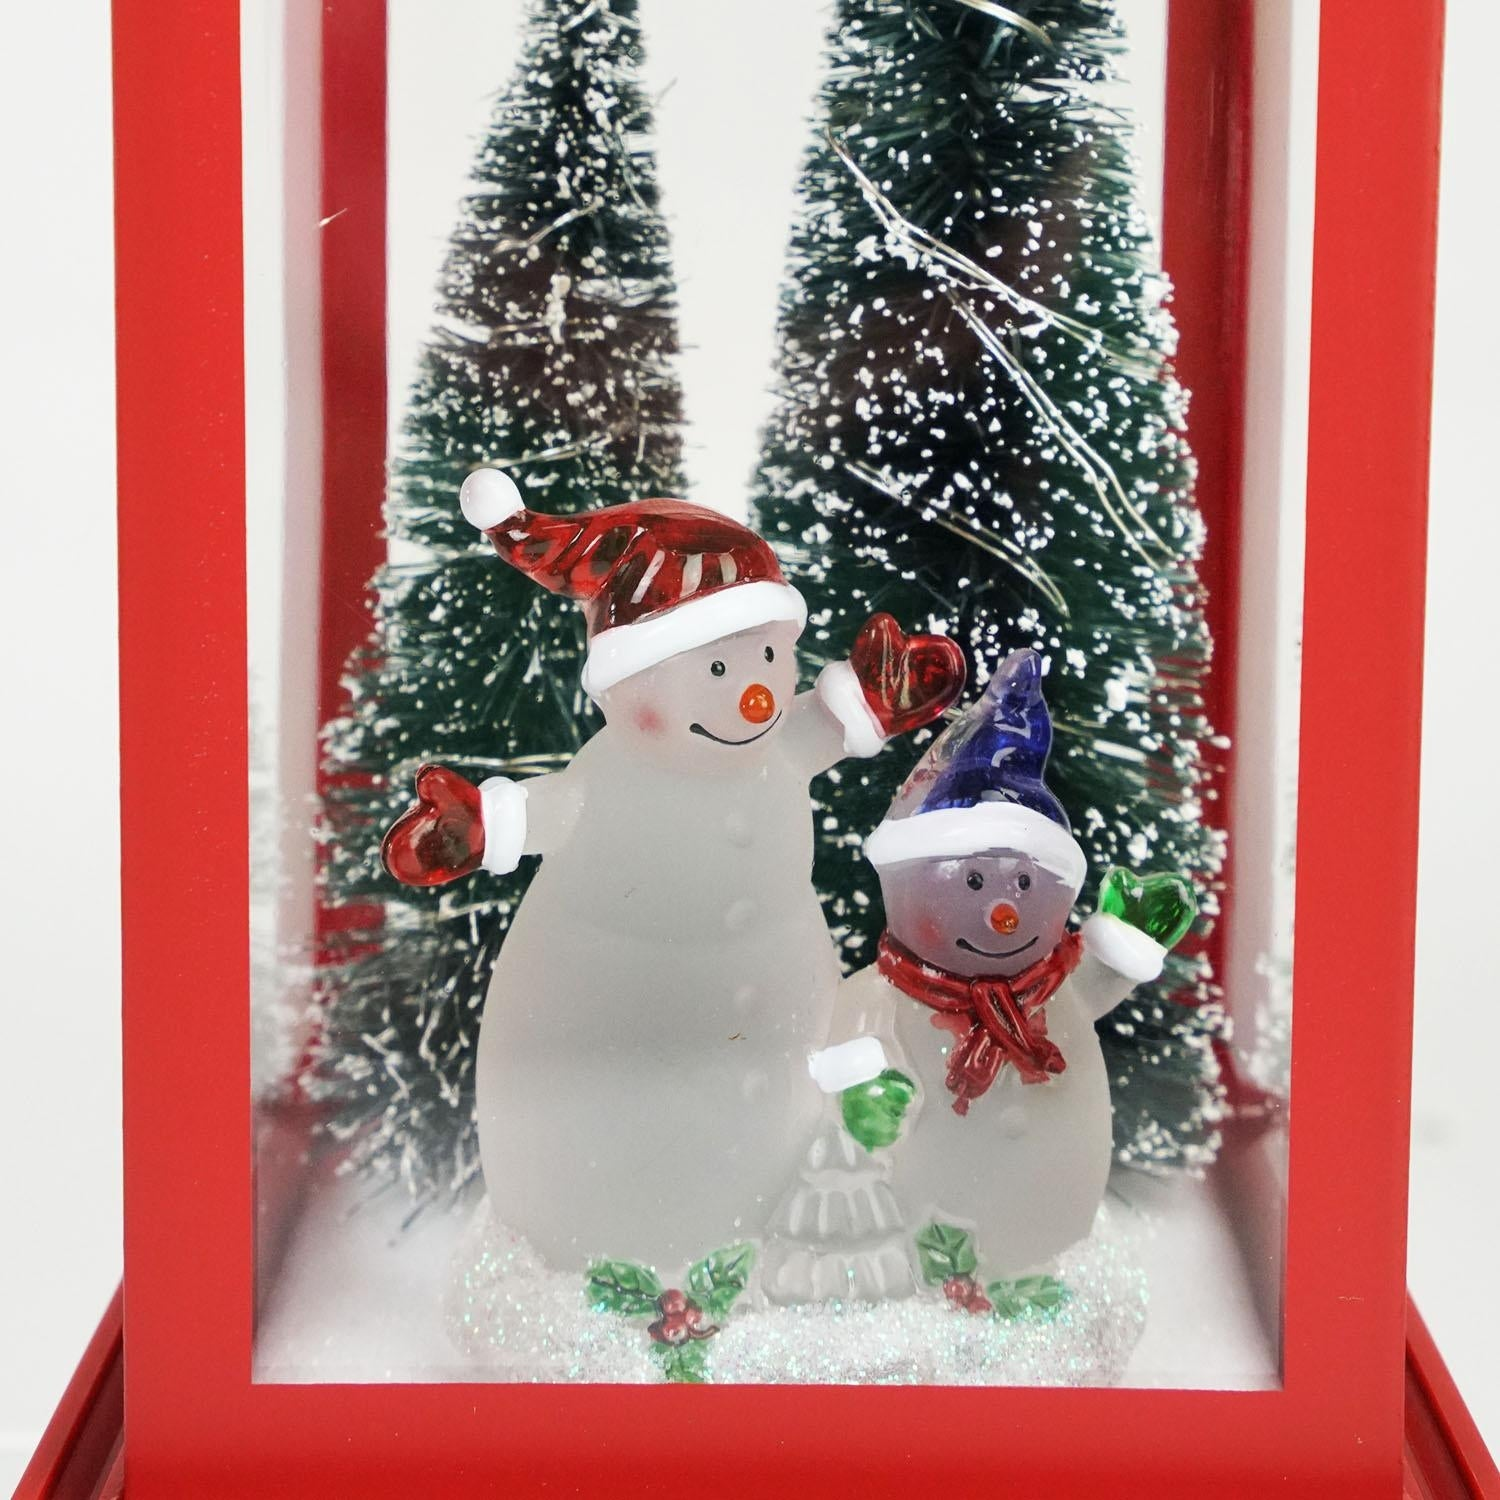 105 Snowmen With Trees Red Led Lighted Christmas Lantern Tabletop